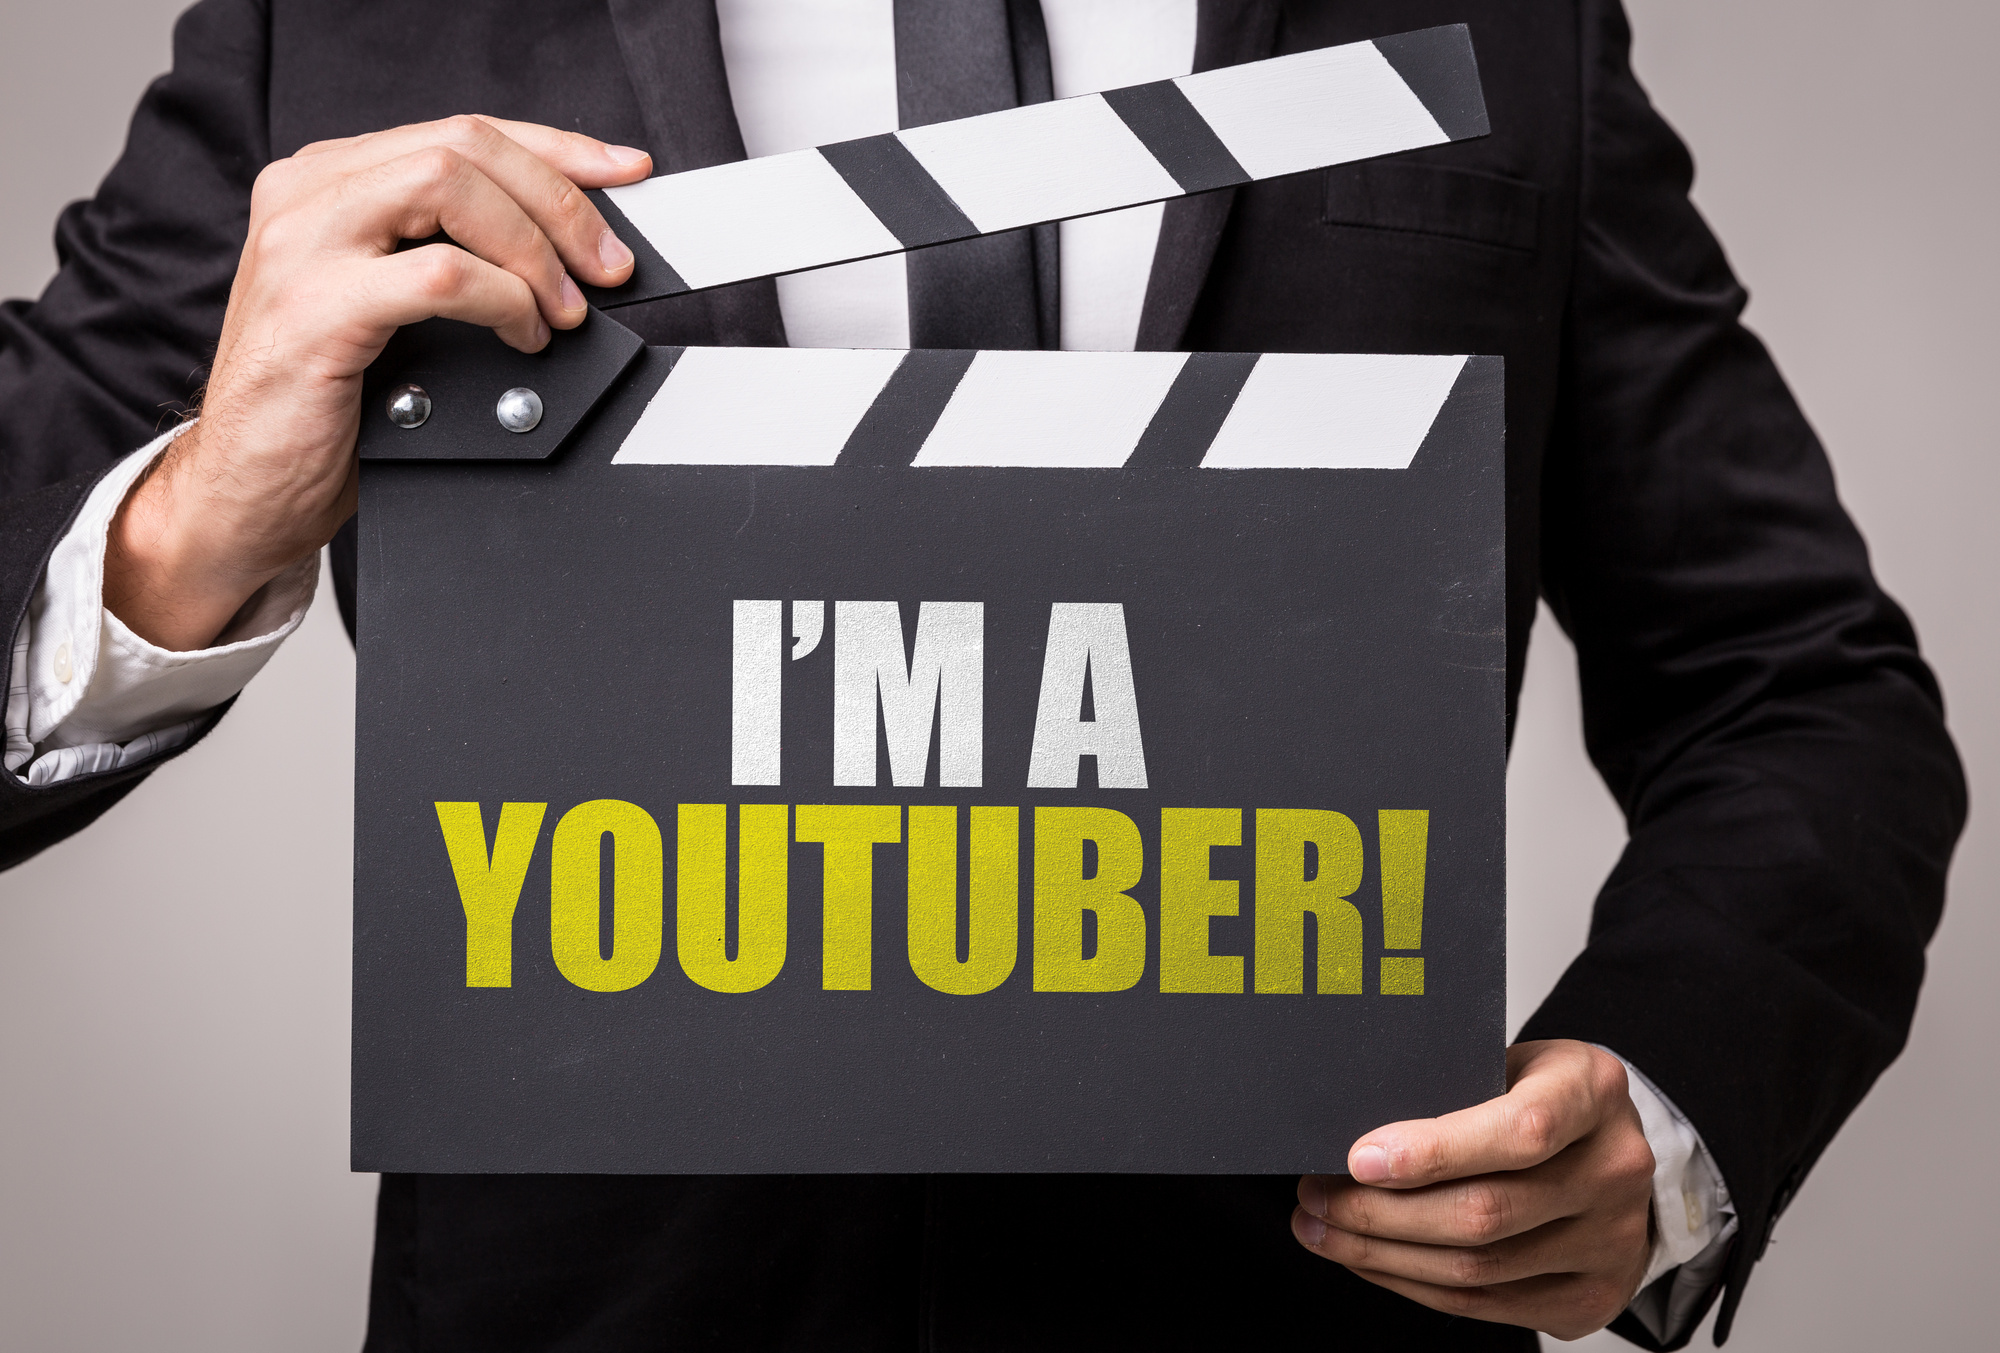 Want to Become the Next Pewdiepie? Check out These 5 Tips on How to Become a YouTuber